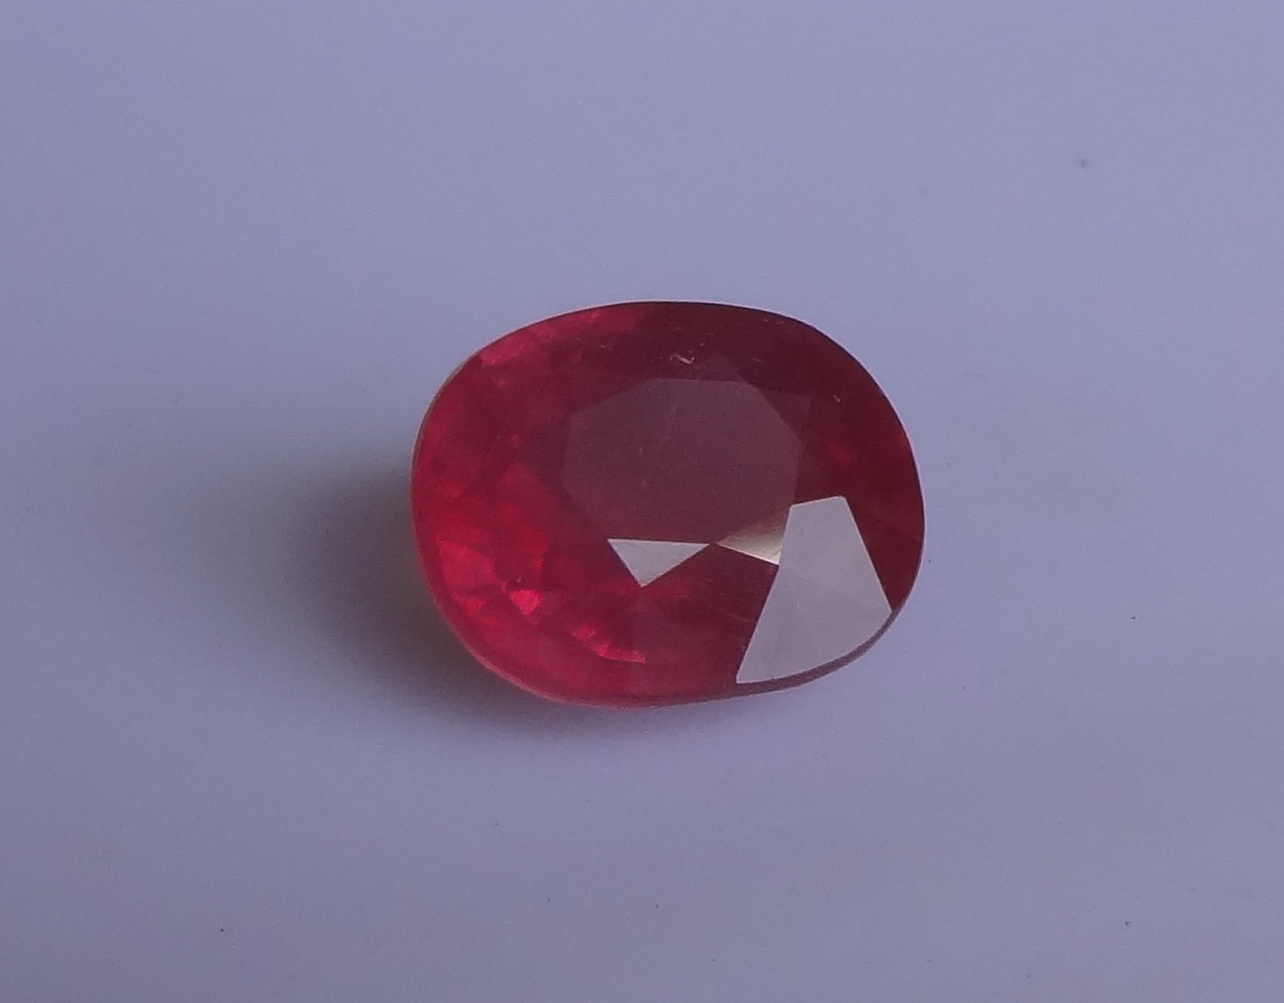 Cheap treated and heated Ruby.